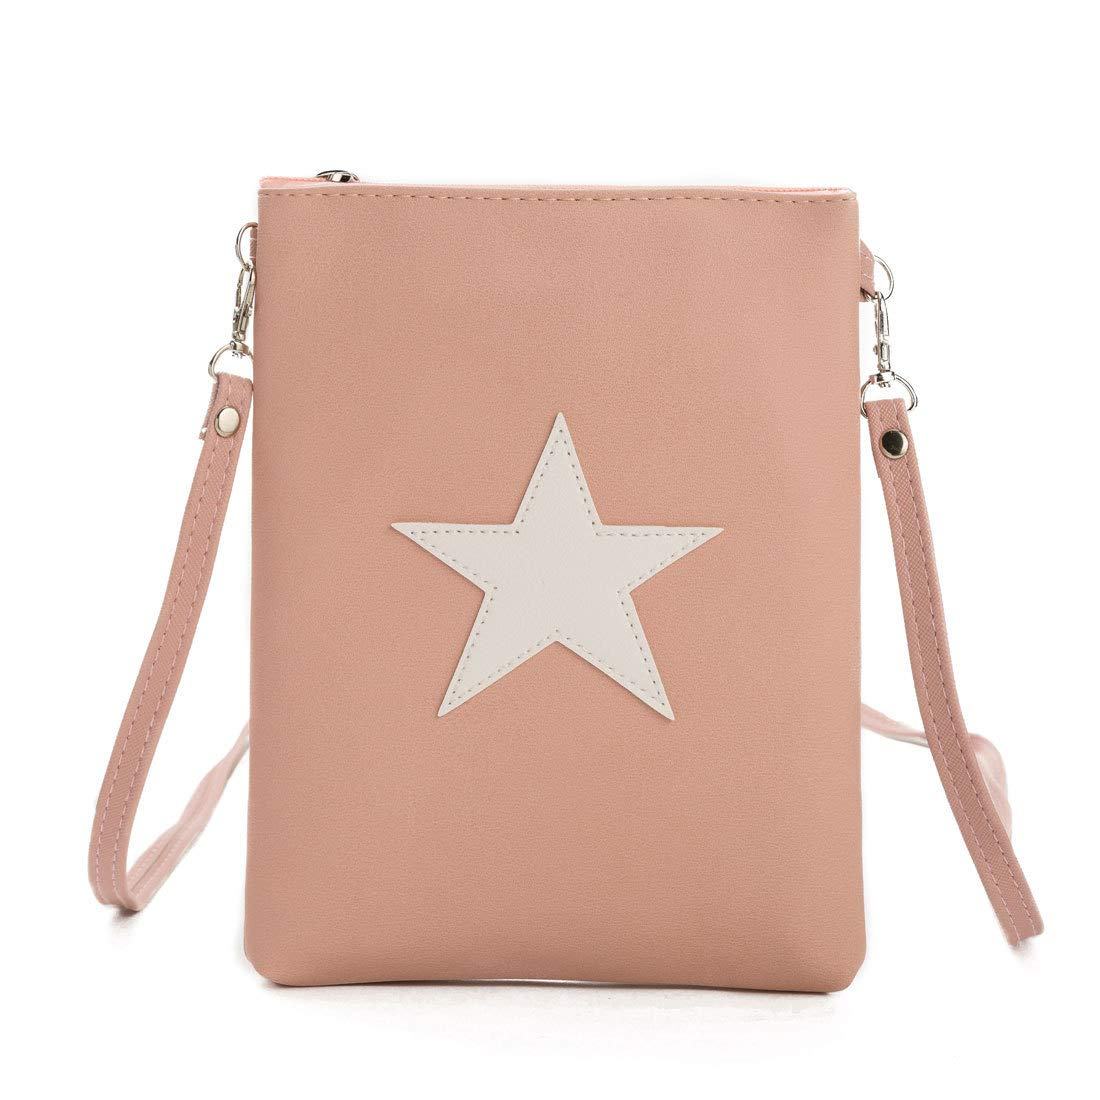 ZIIPOR Crossbody Cell Phone Bag PU Leather Portable Small Purse Wallet With Credit Card Slots